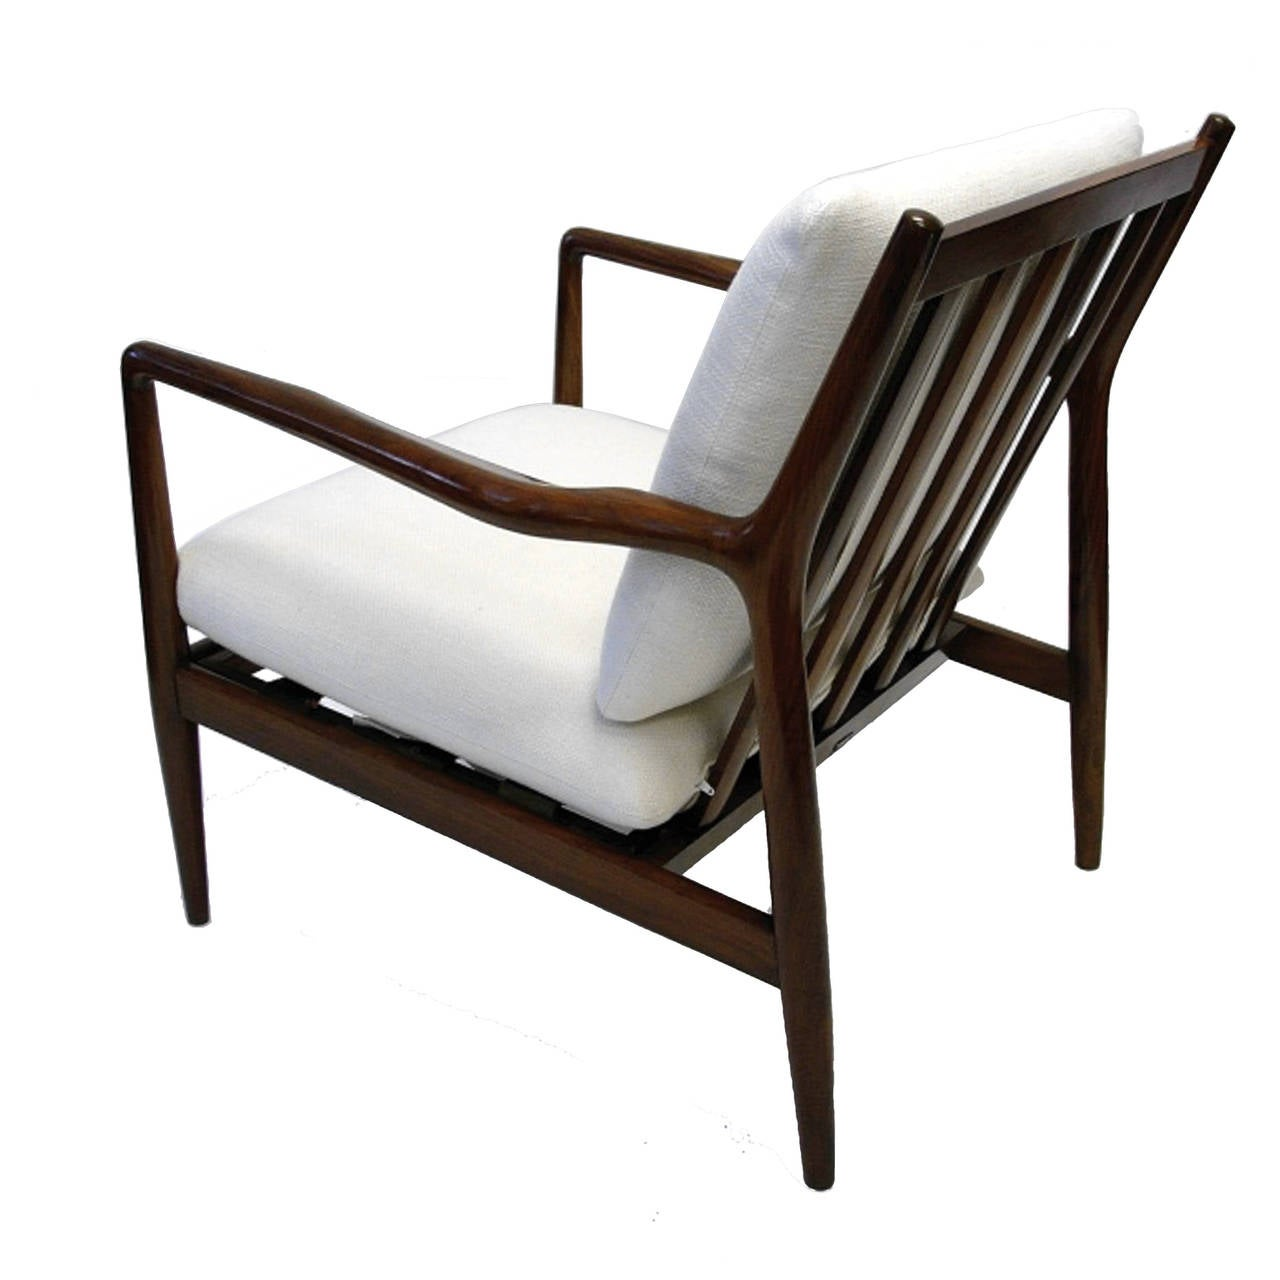 stool chair price in pakistan boat chairs for sale rare pair of indian rosewood from peshawar